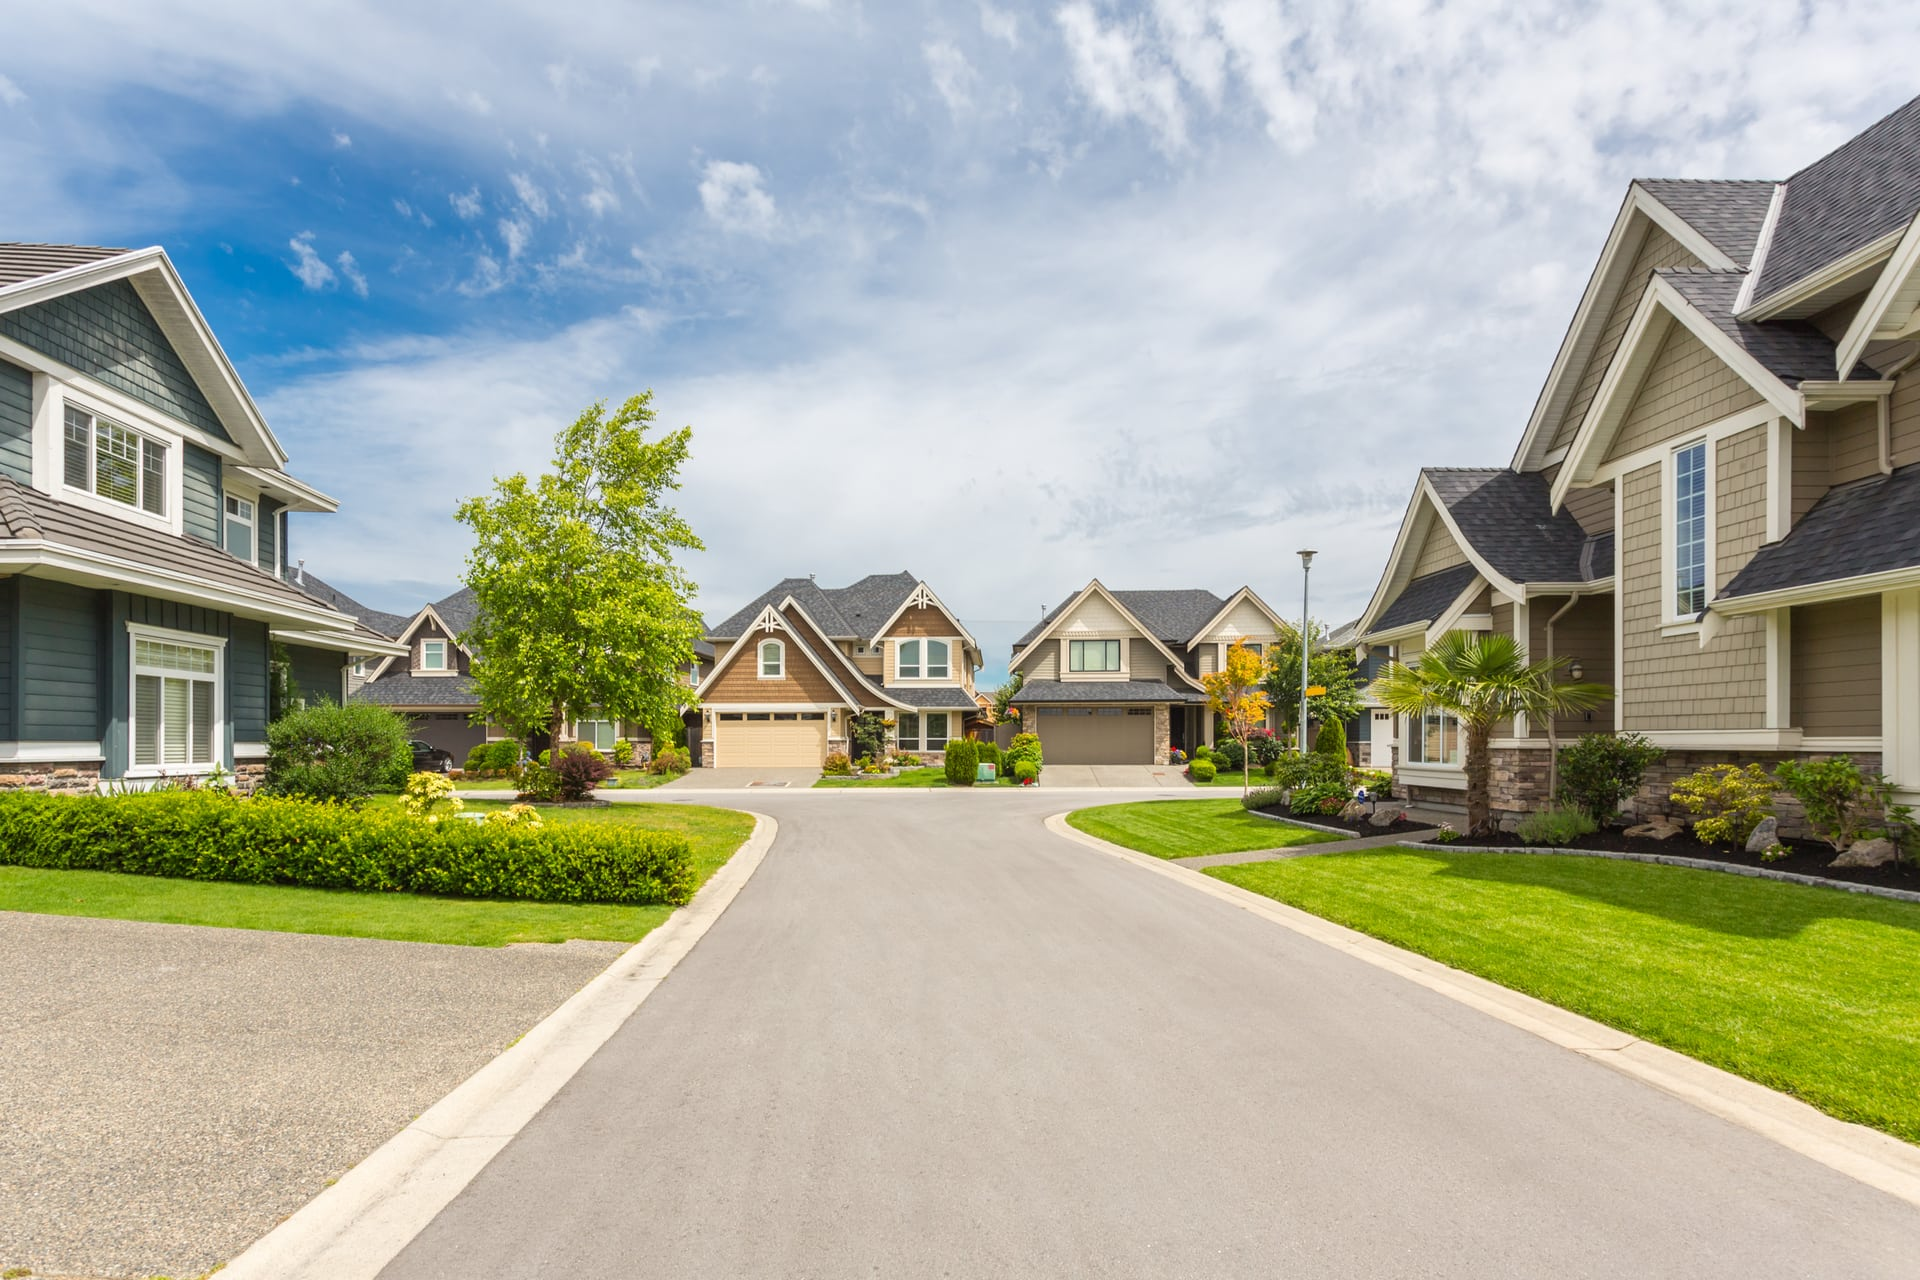 How Much are Homes Selling for in my Neighborhood?